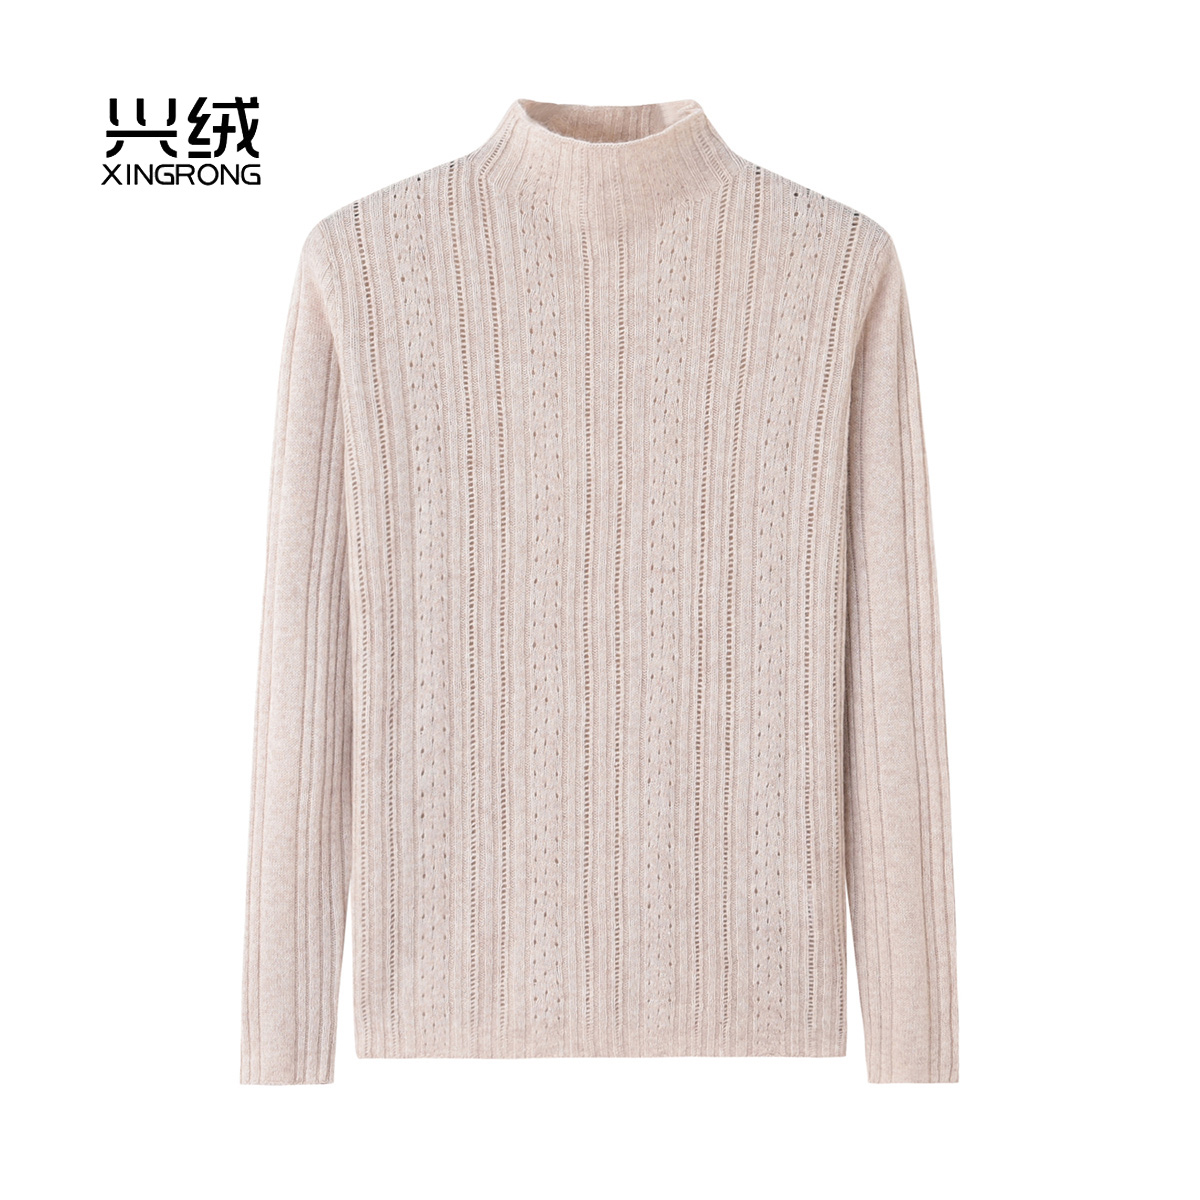 Autumn cashmere sweater womens half high round neck hollowed out sweater striped jacquard knitting bottom coat slim sweater